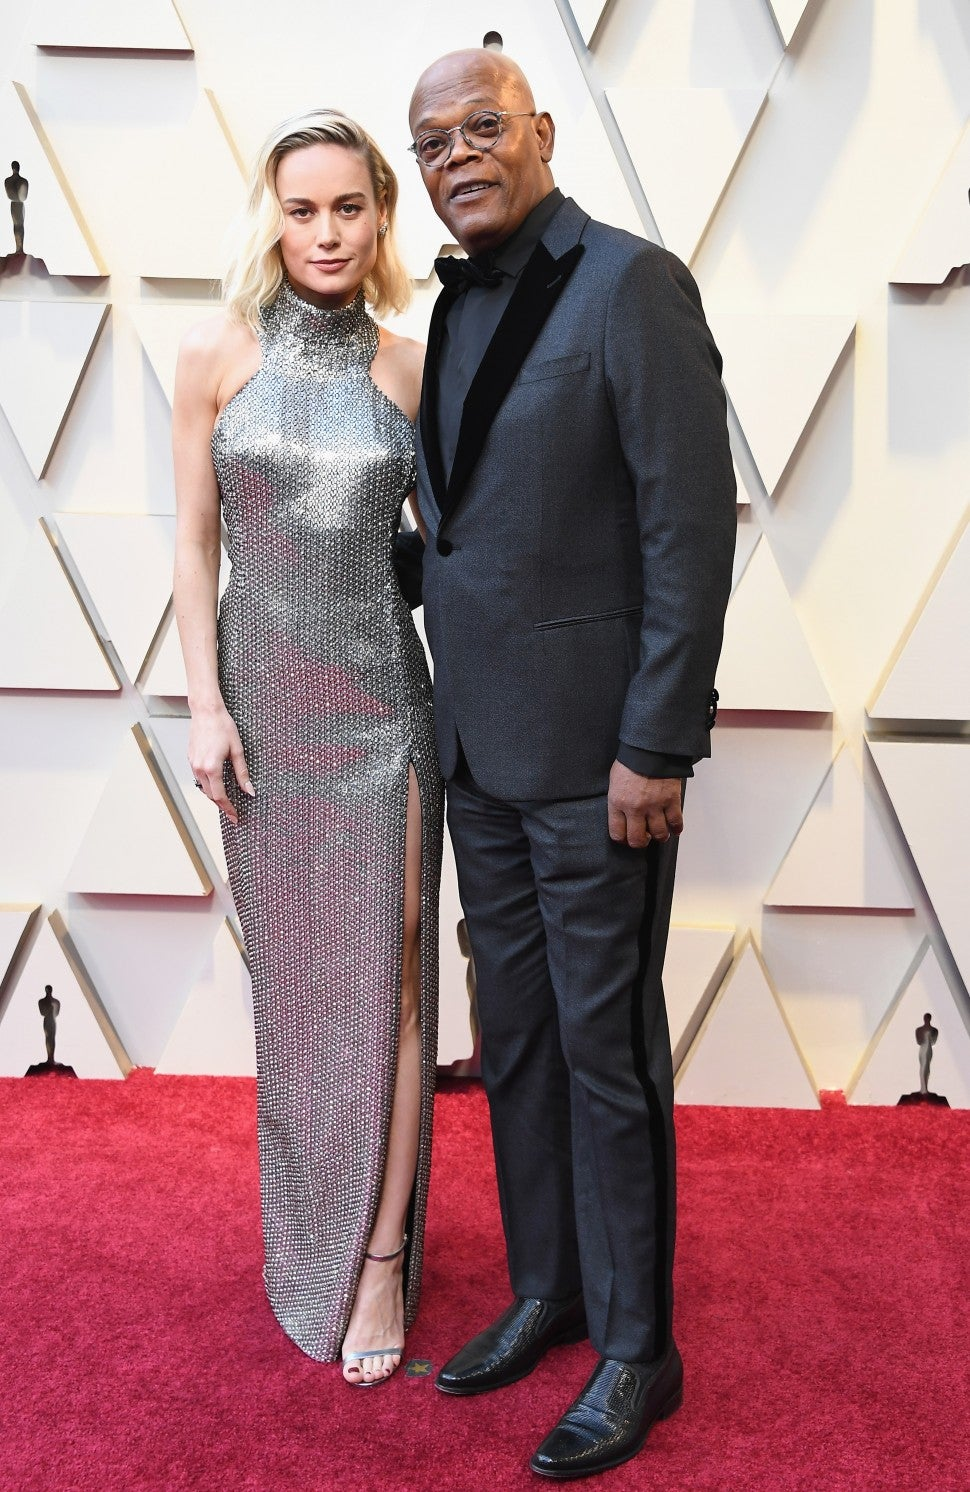 Brie Larson and Samuel L. Jackson at 2019 Oscars